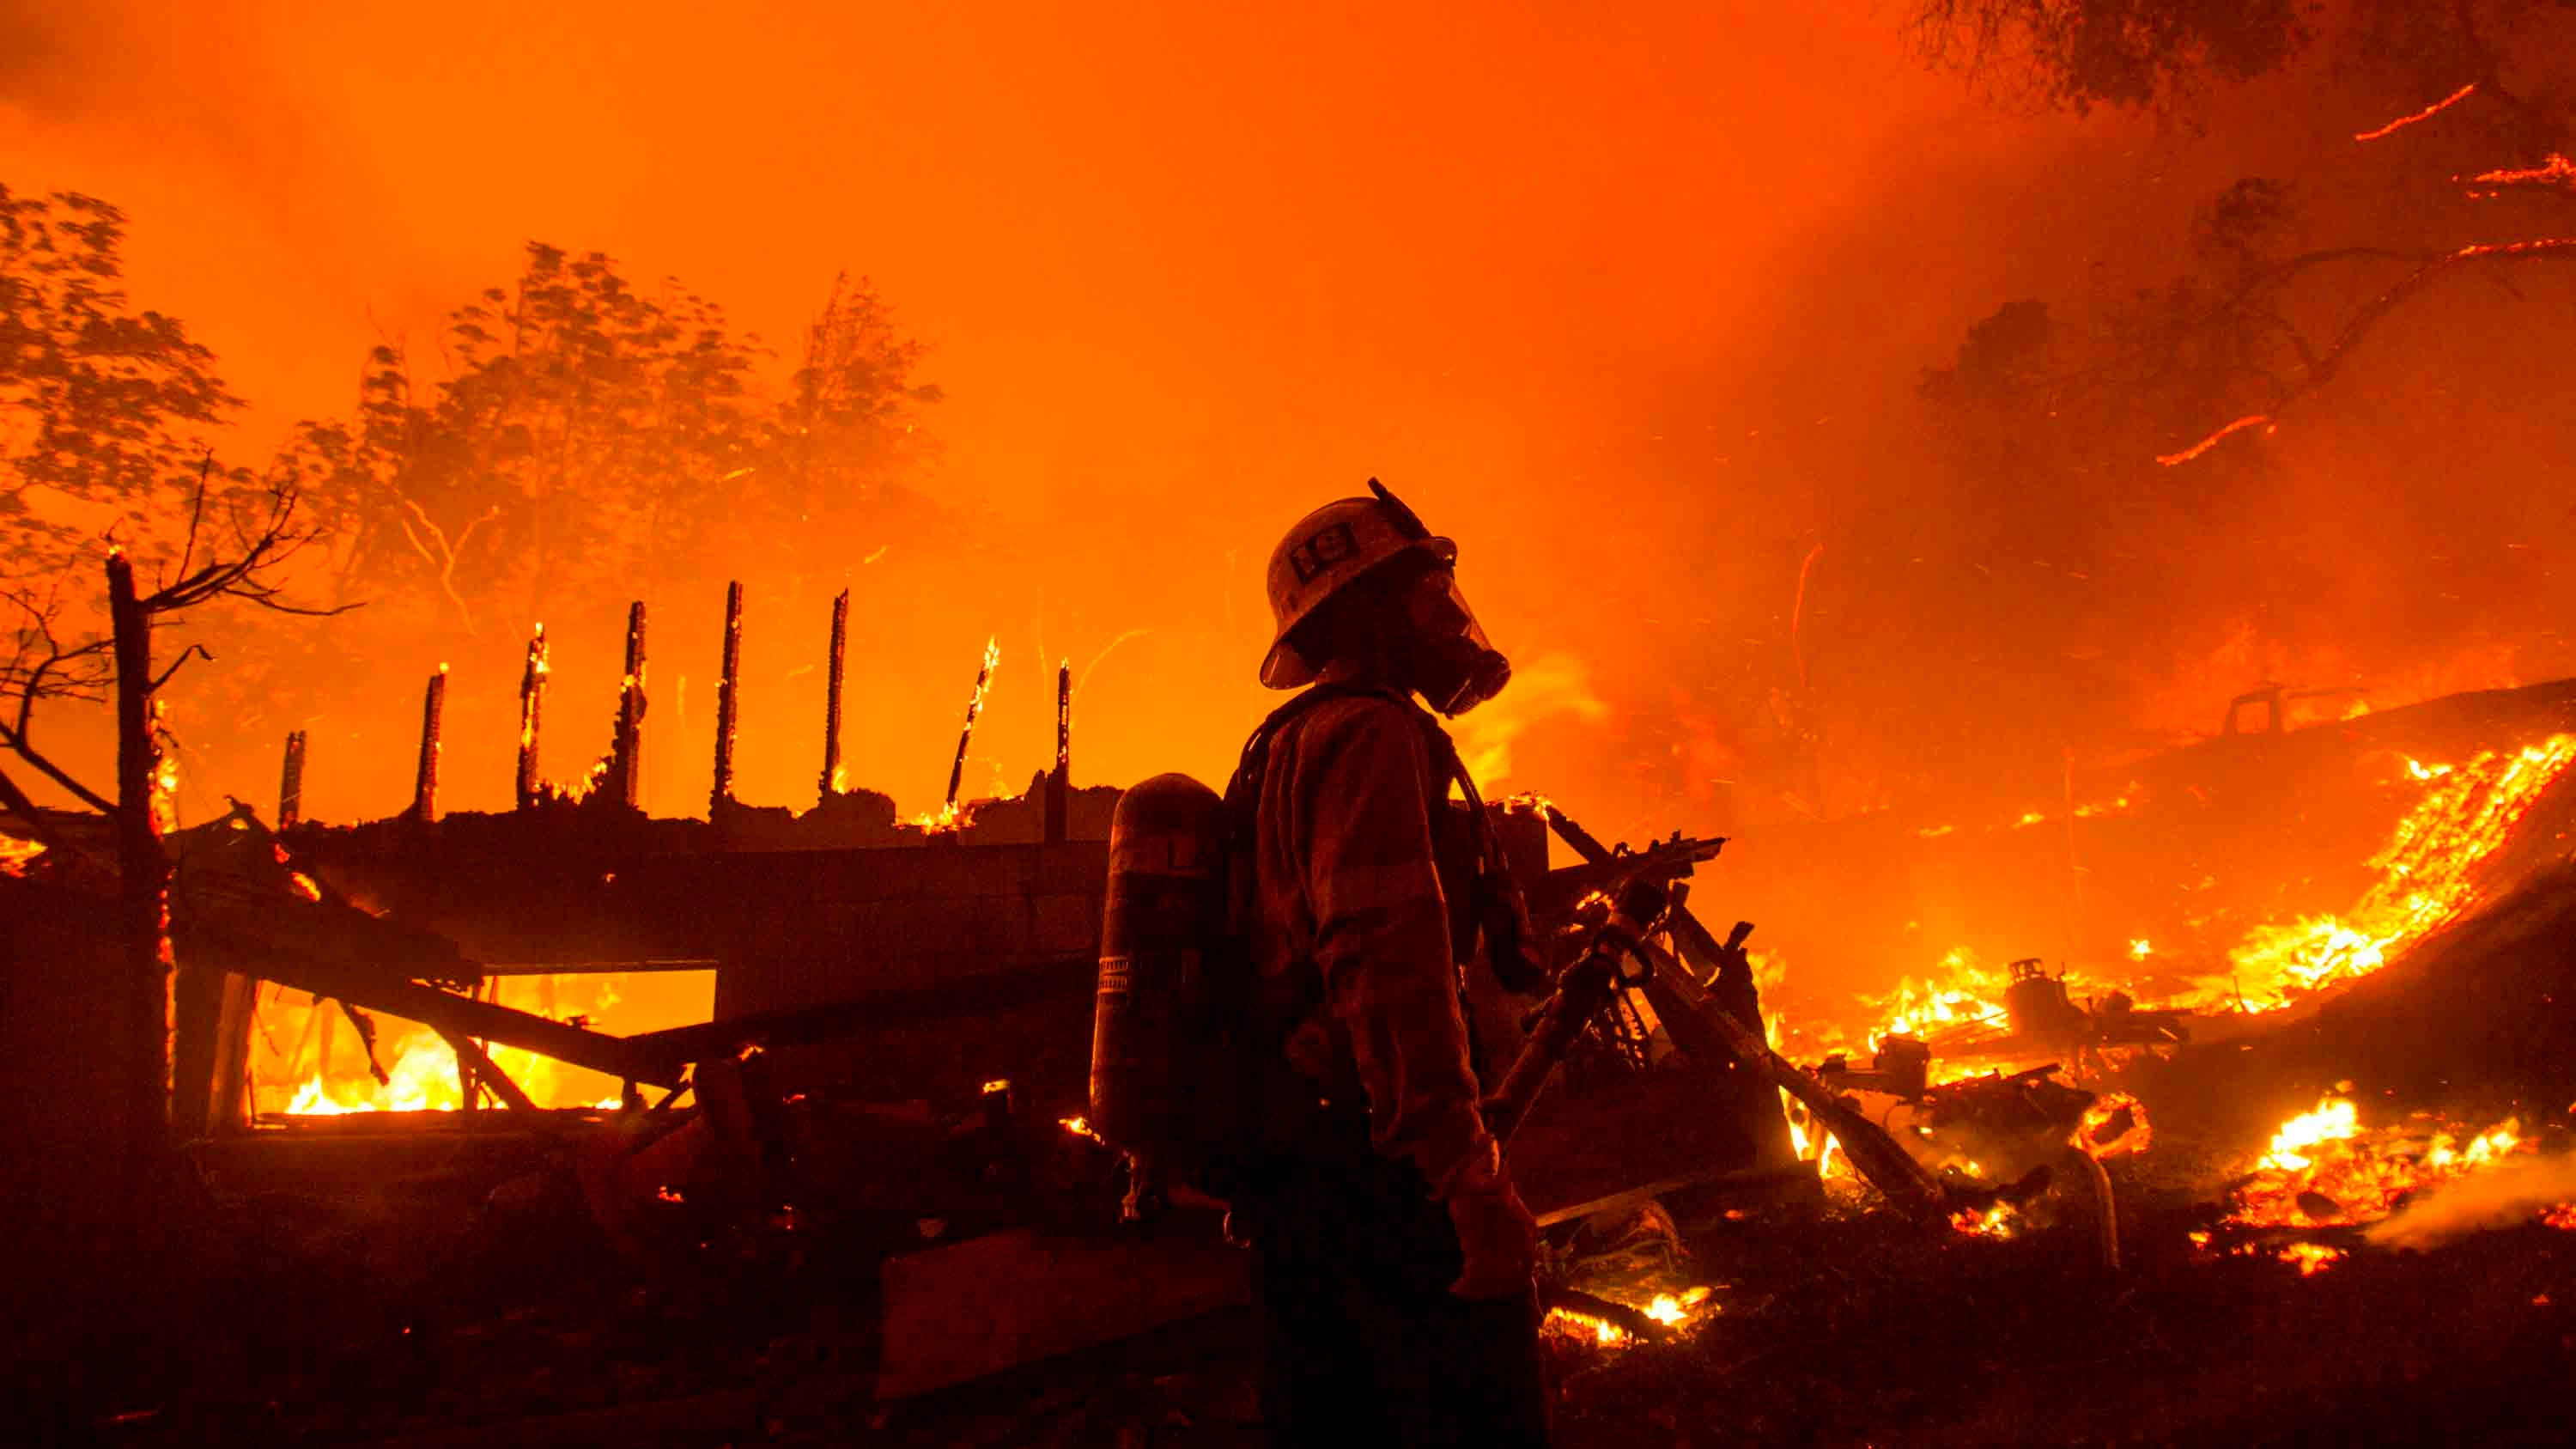 More than 5,000 Structures Threatened by 'Explosive' Southern California Wildfire